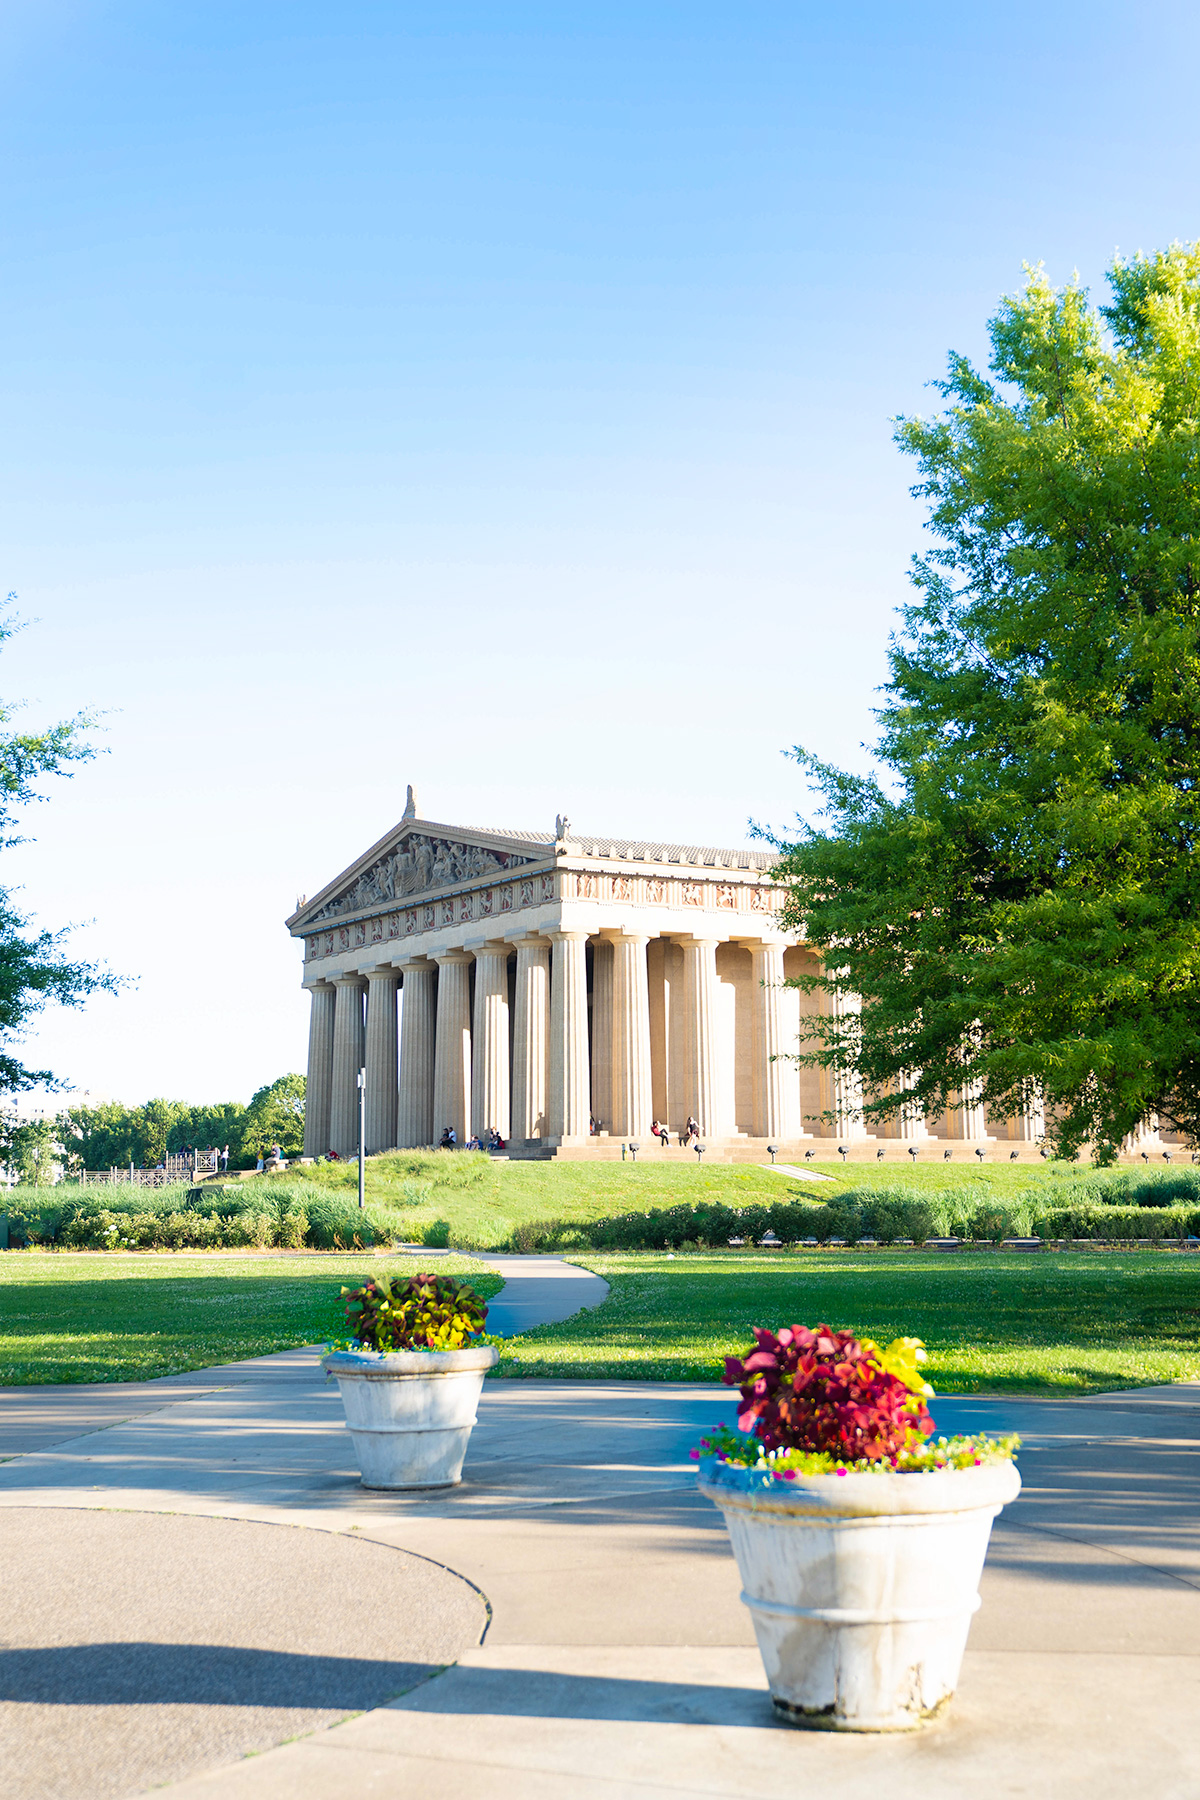 The-Parthenon-Centennial-Park-Nashville